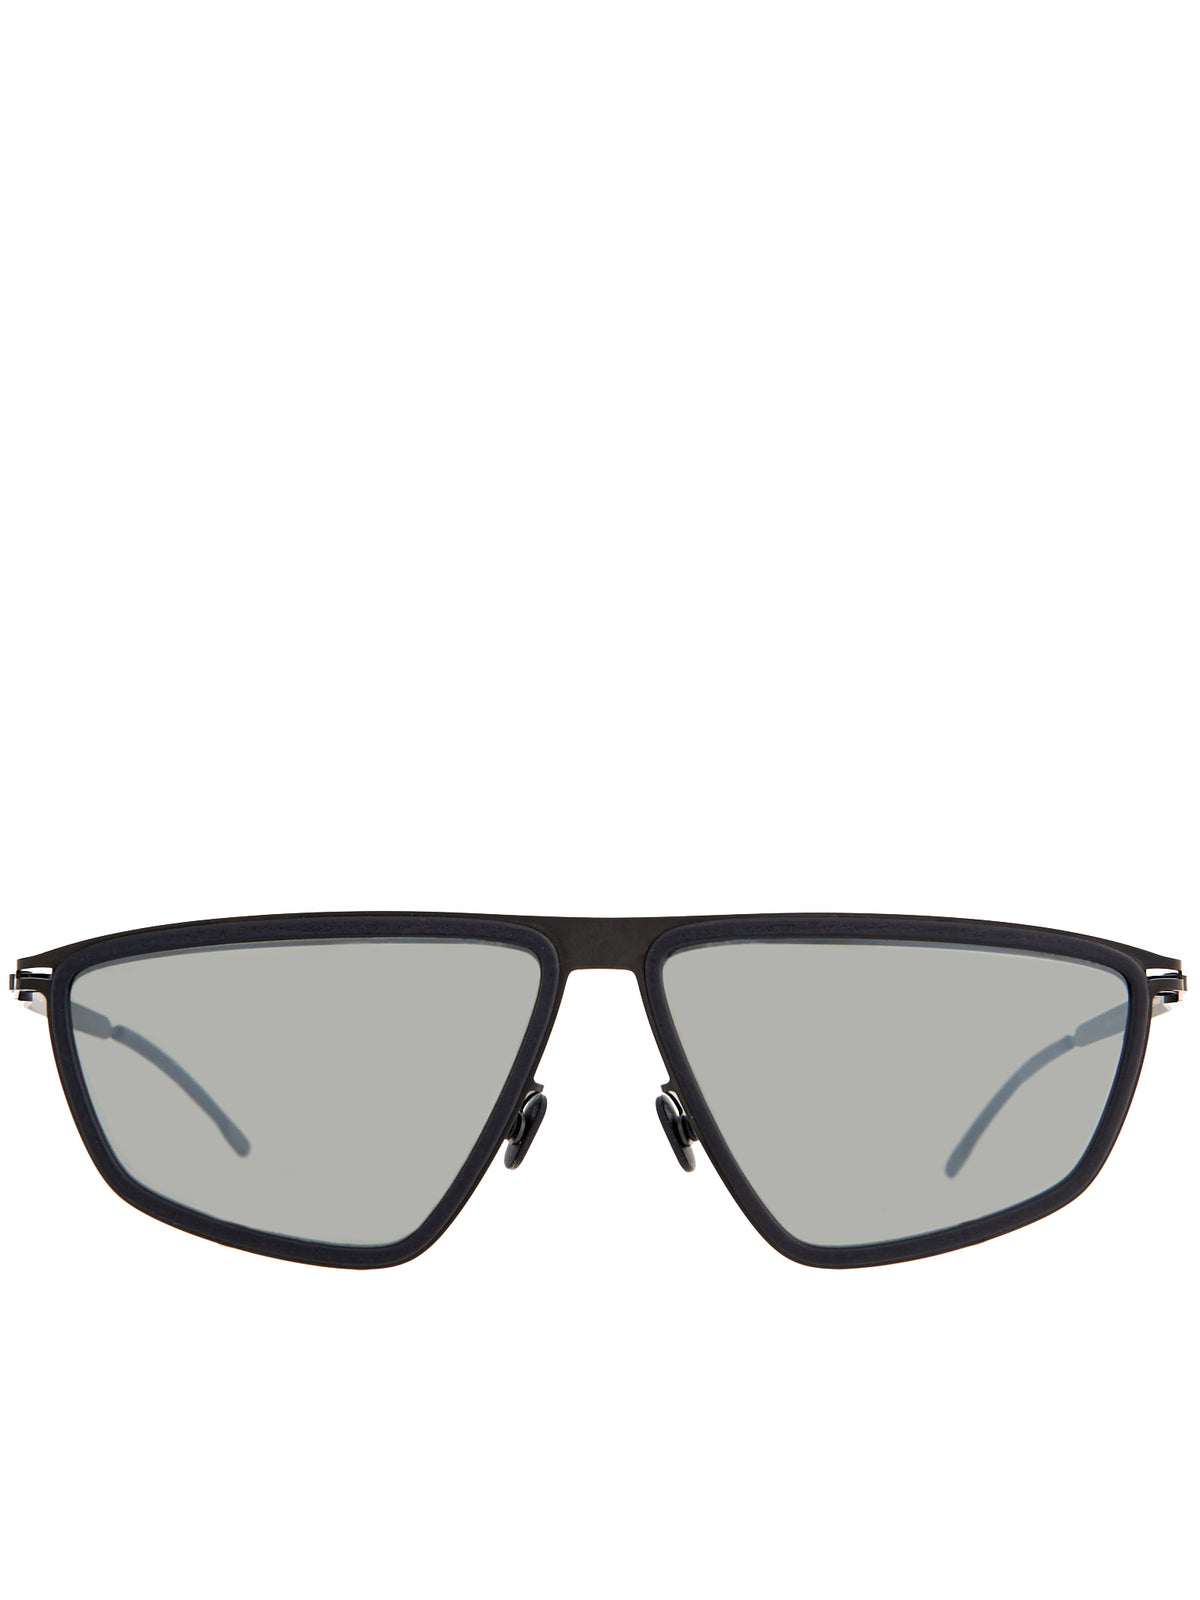 'Tribe' Sunglasses (TRIBE-PITCH-BLACK-MIRROR-BLACK)